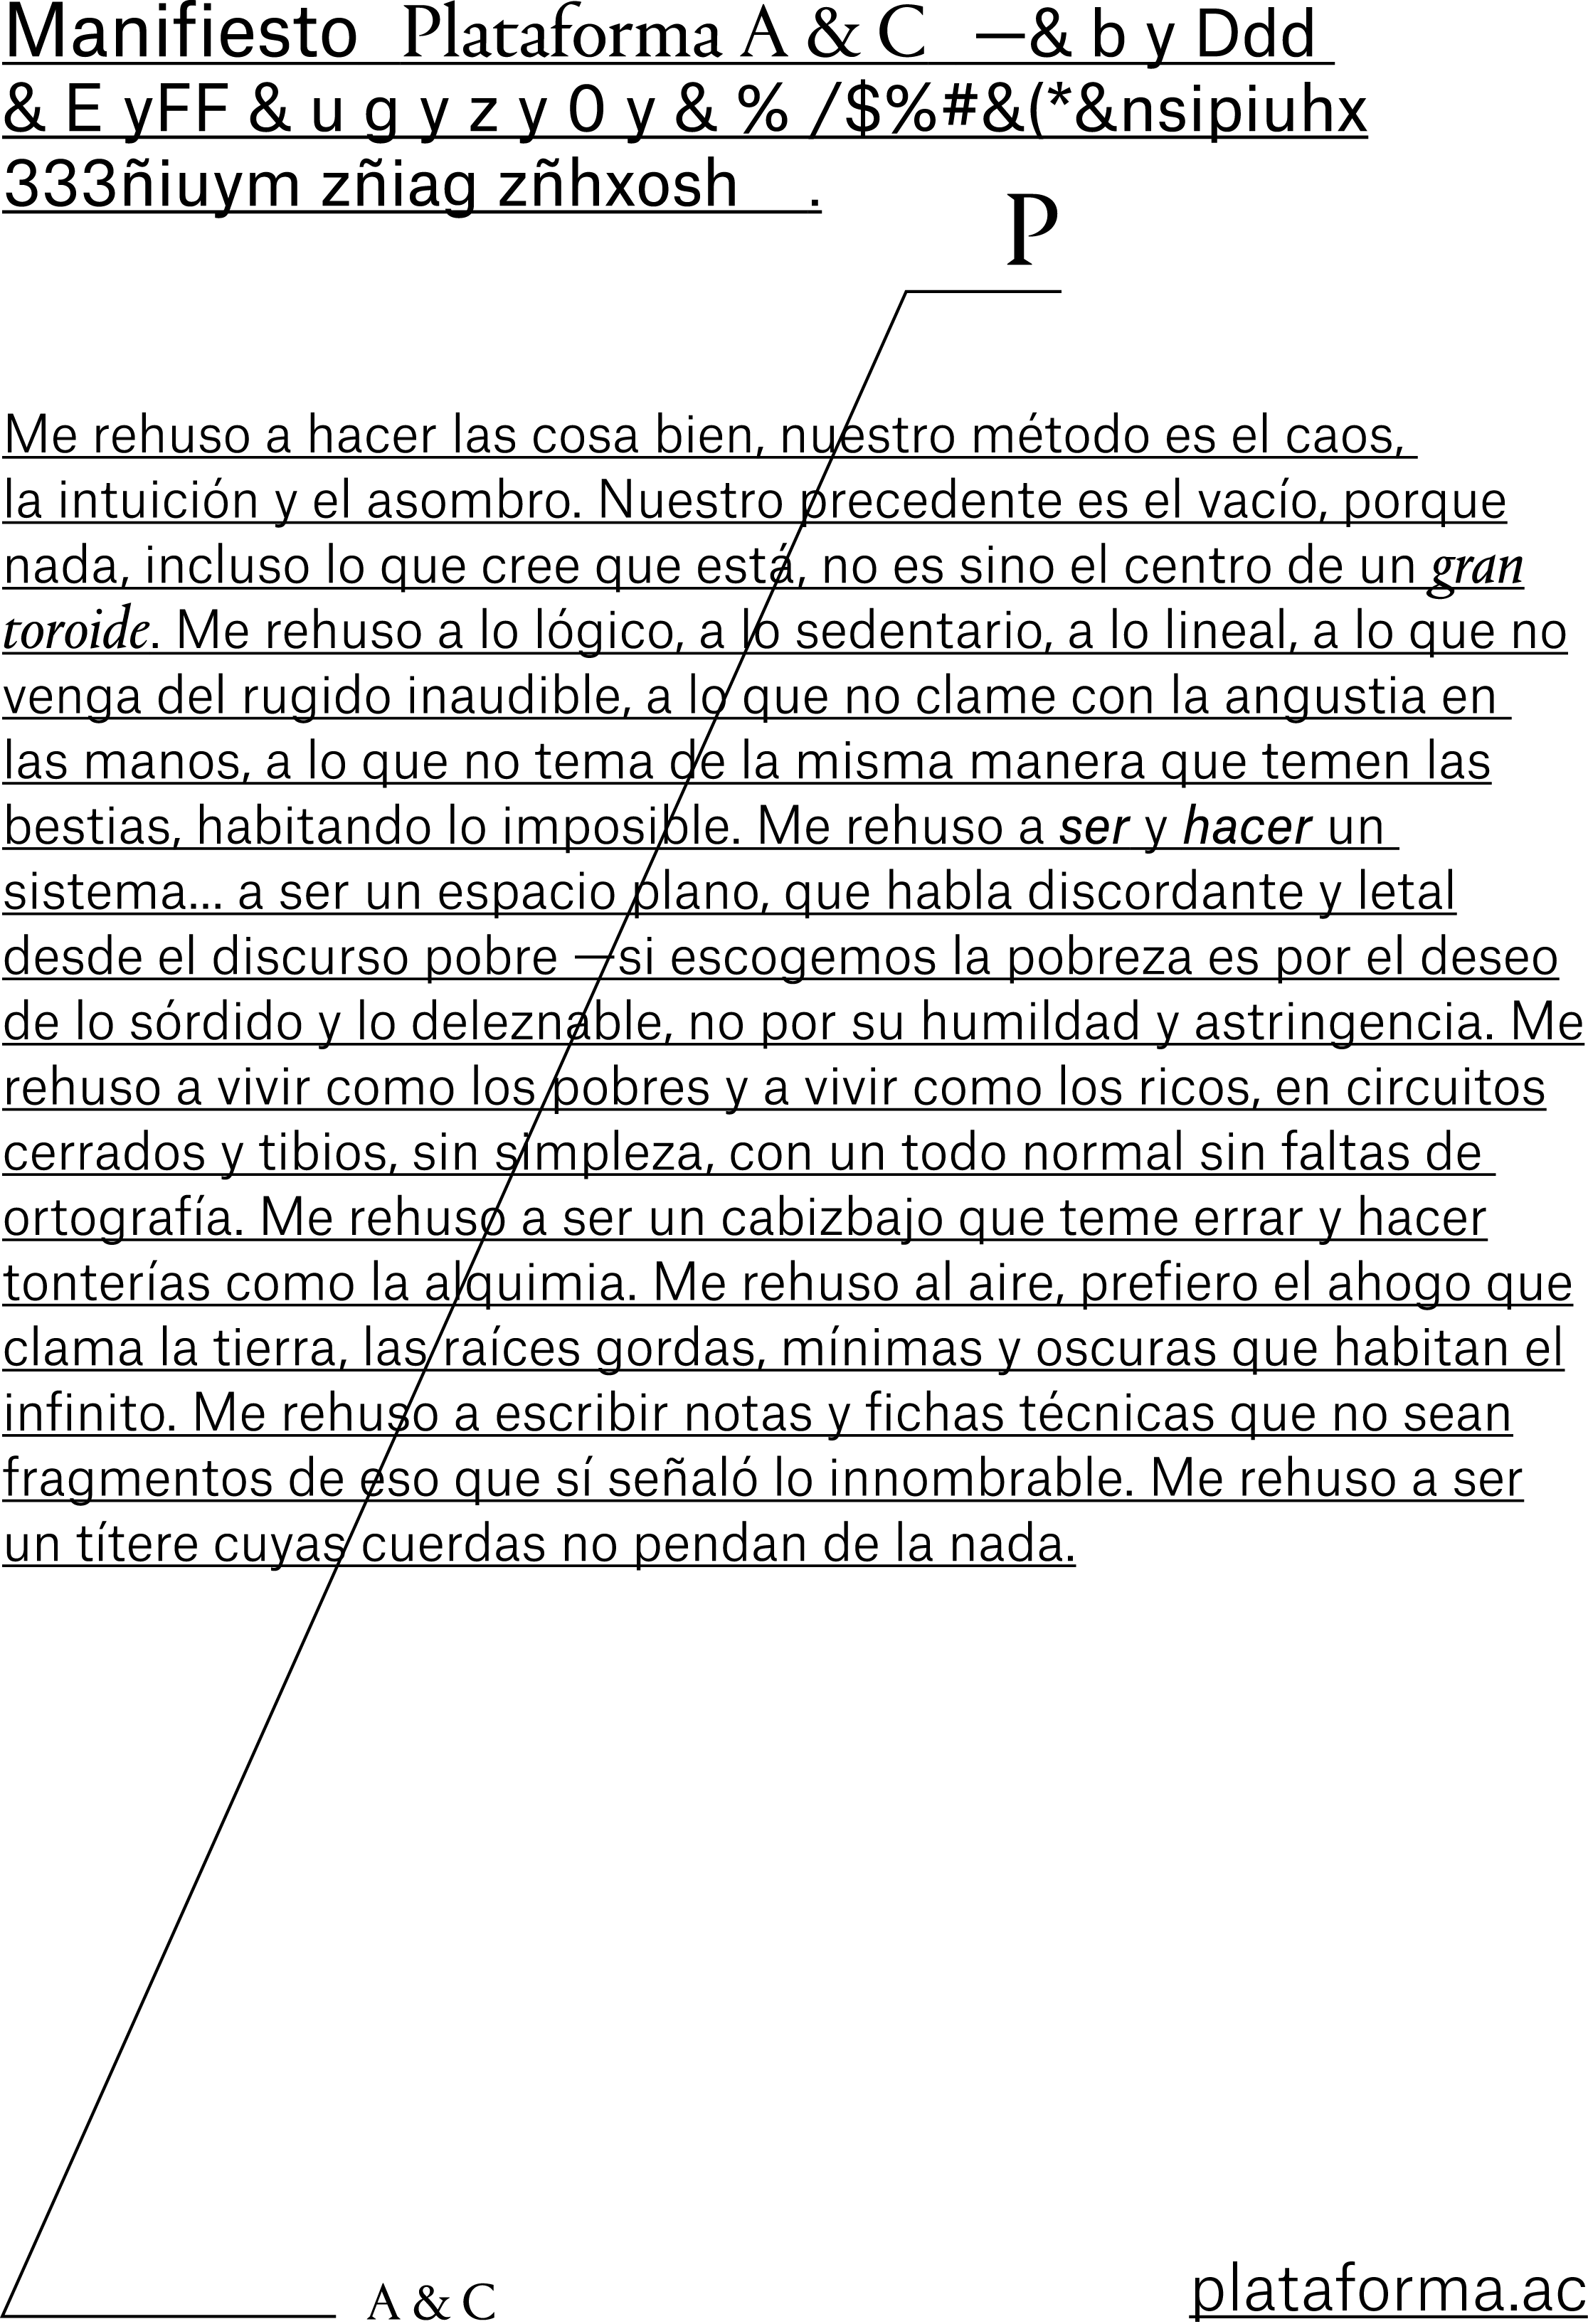 MANIFIESTO-P&A.png